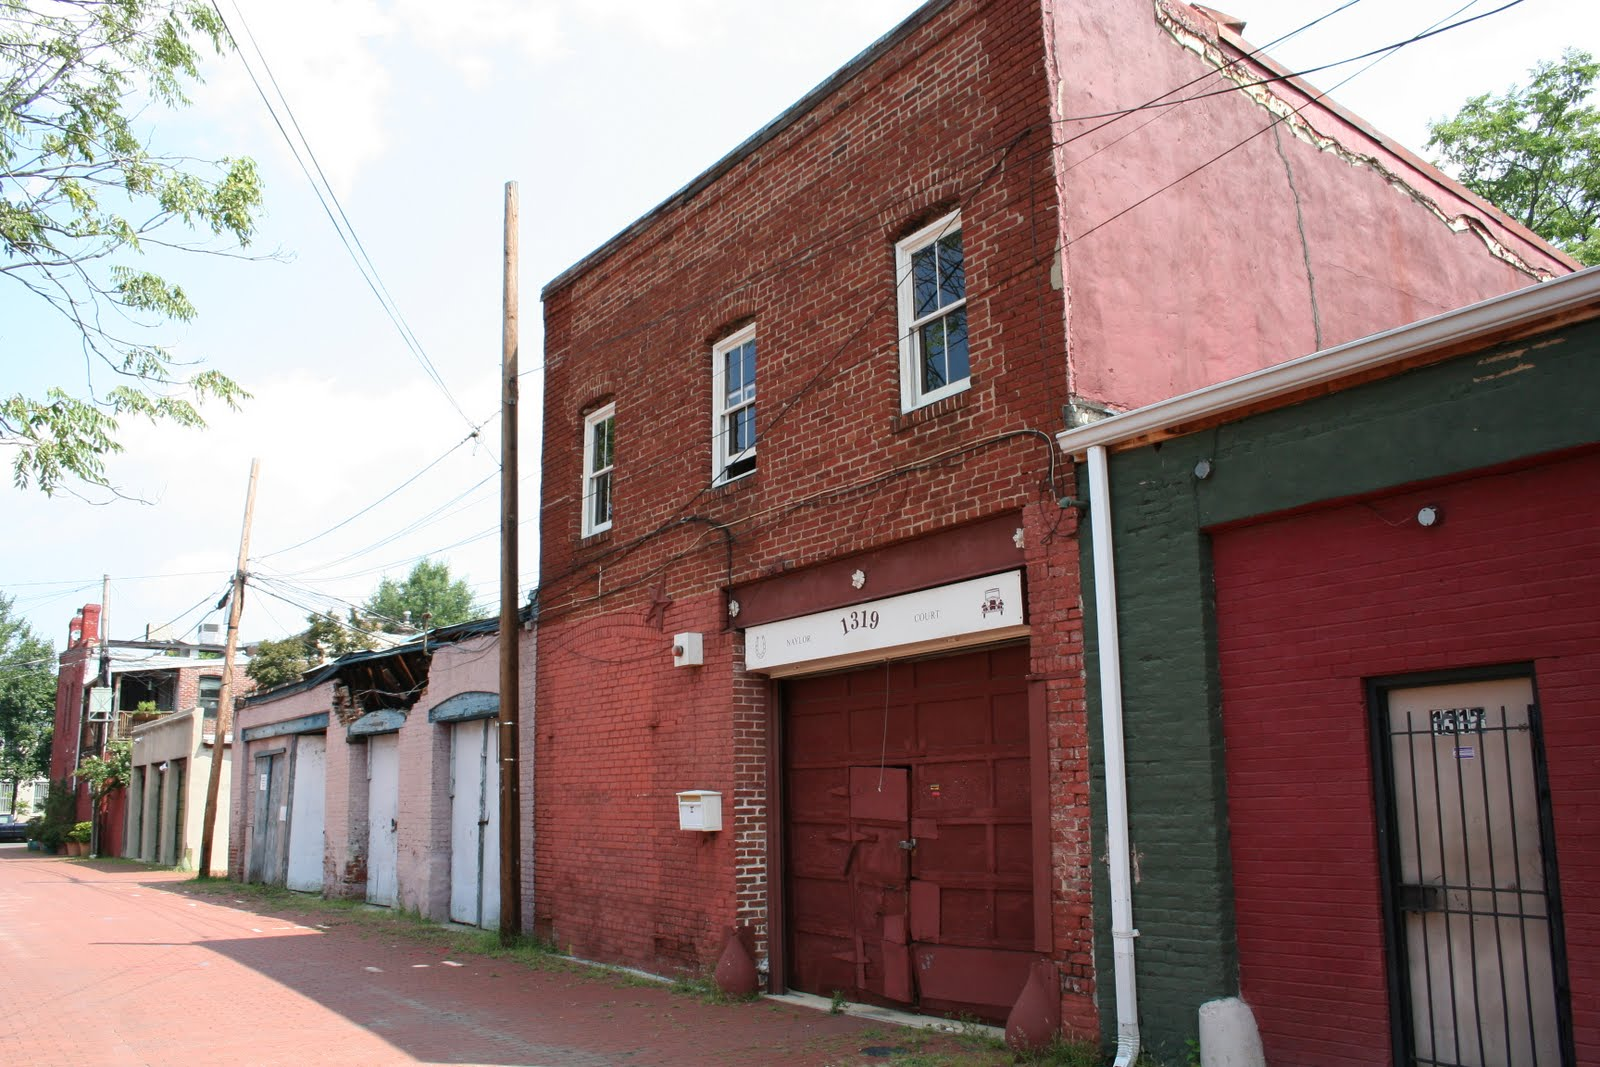 Preserving dc stables stable for sale in historic naylor for Small garages for sale